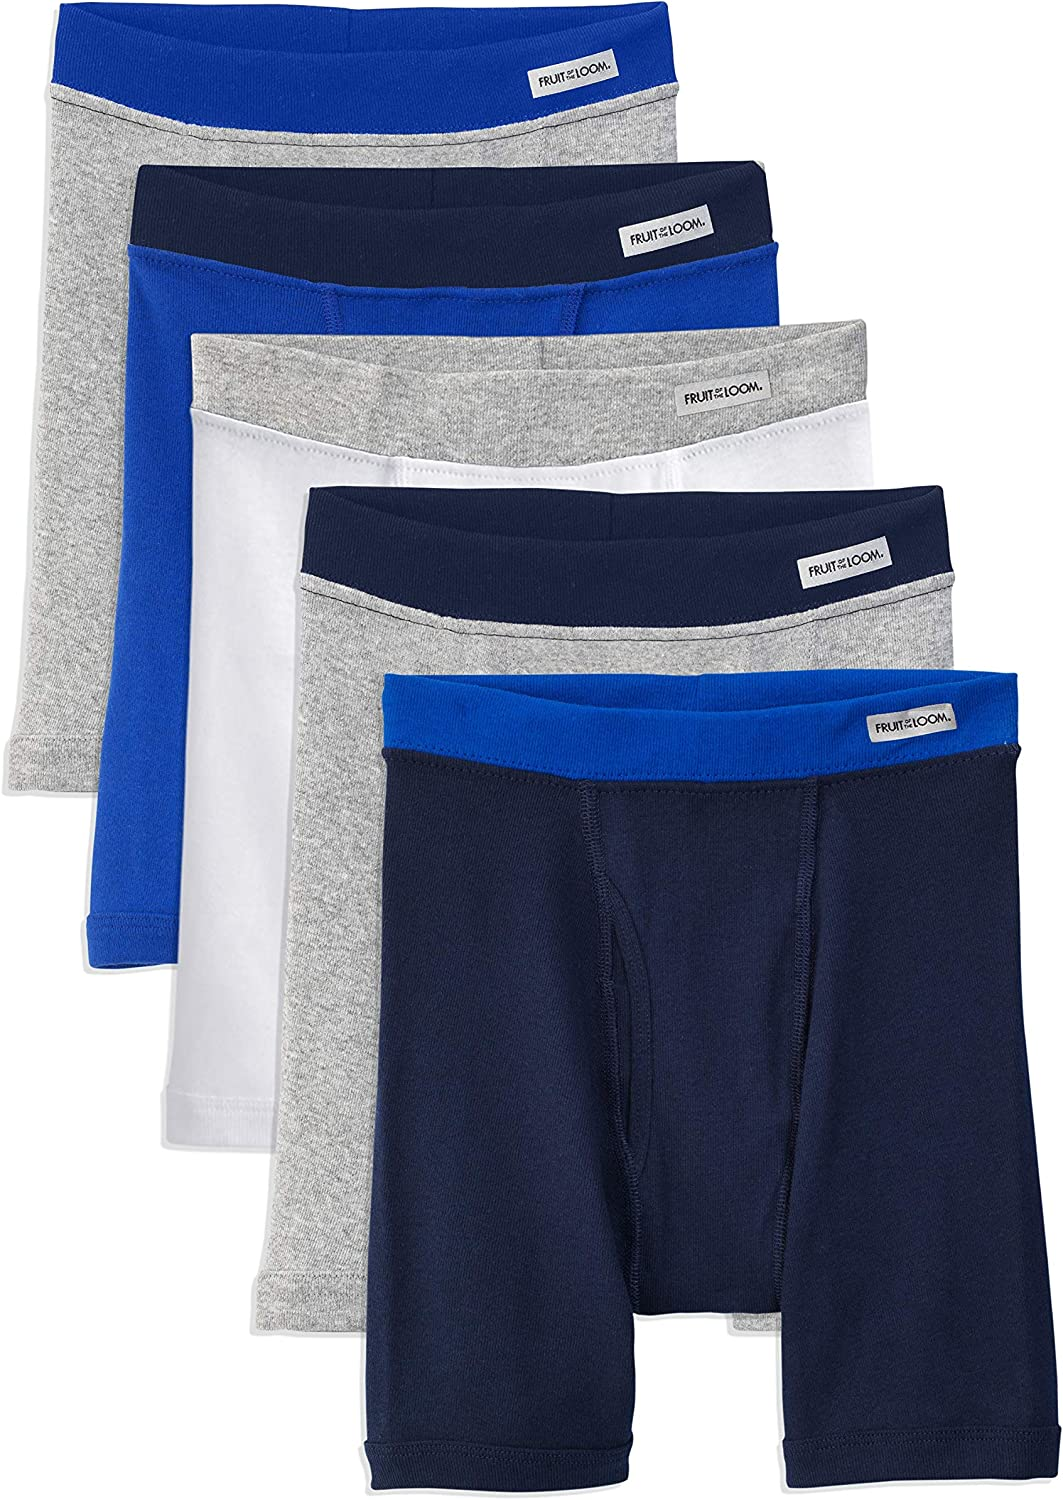 Fruit of the Loom Boys' 5 Pack Assorted Print Boxer Briefs